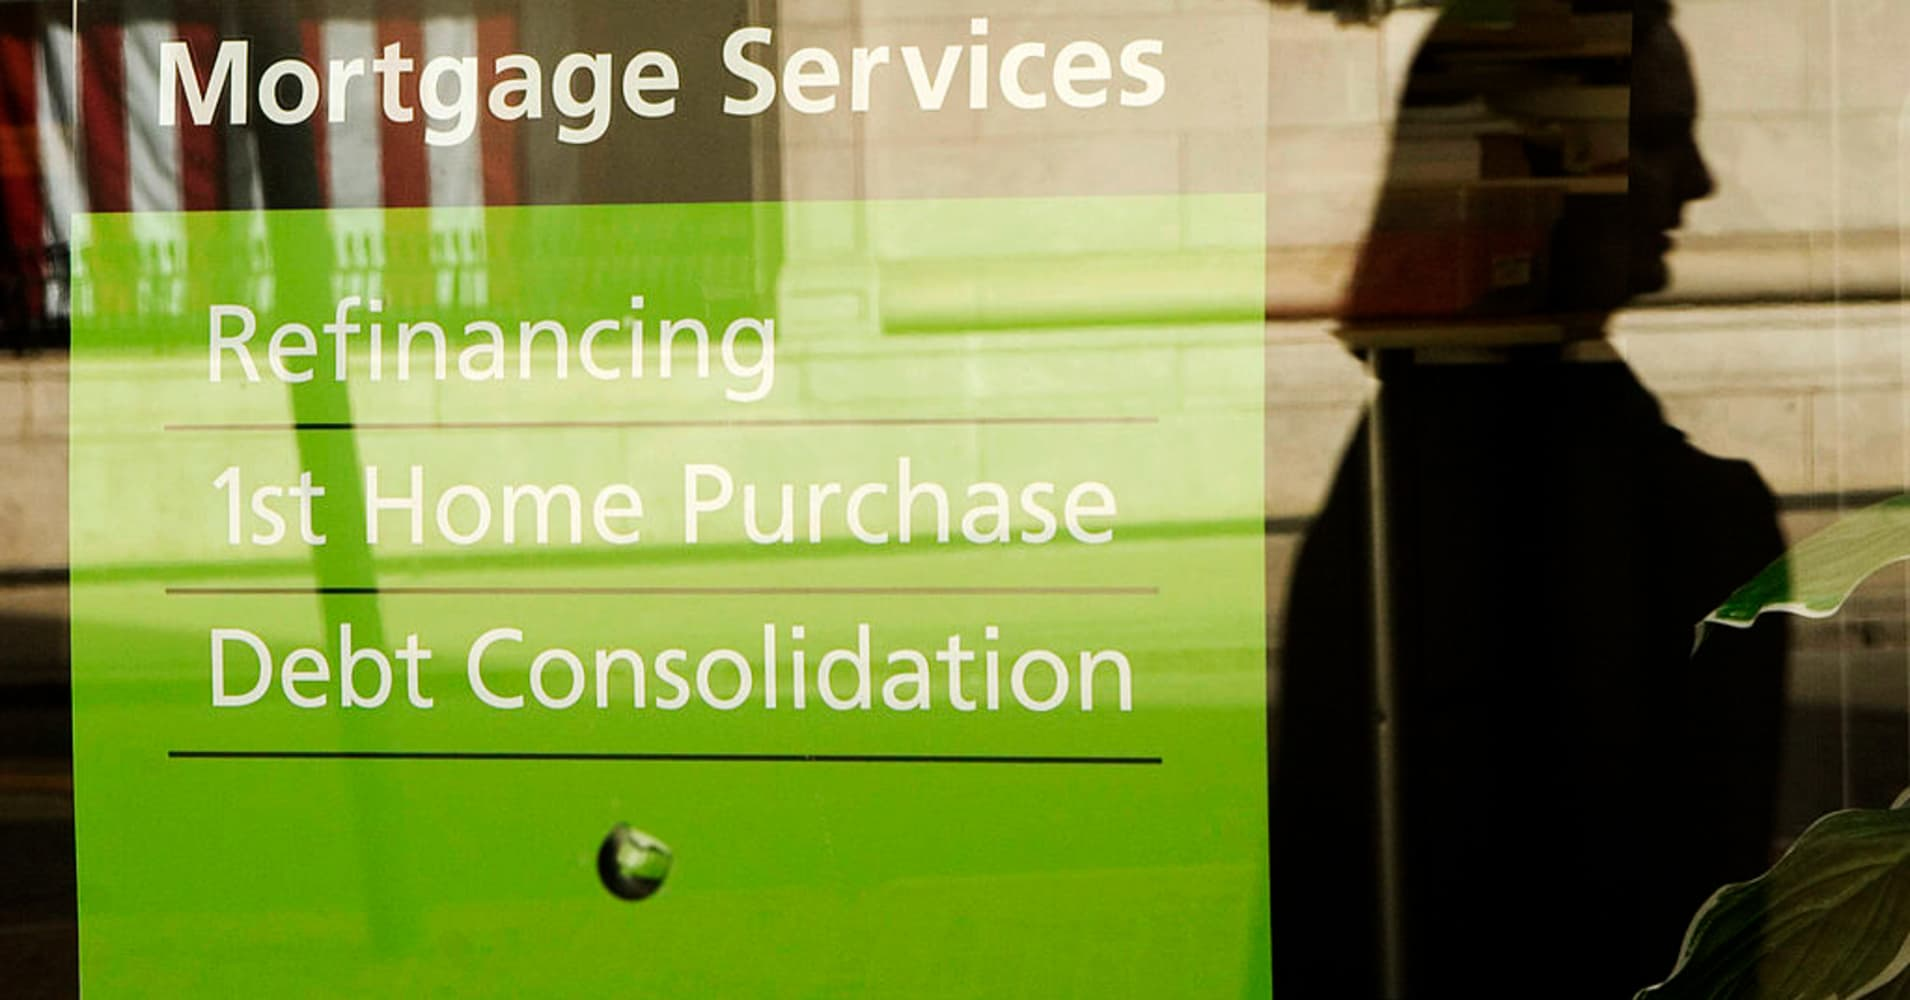 Mortgage rates hit their highest point since last month in a 'threatening' move